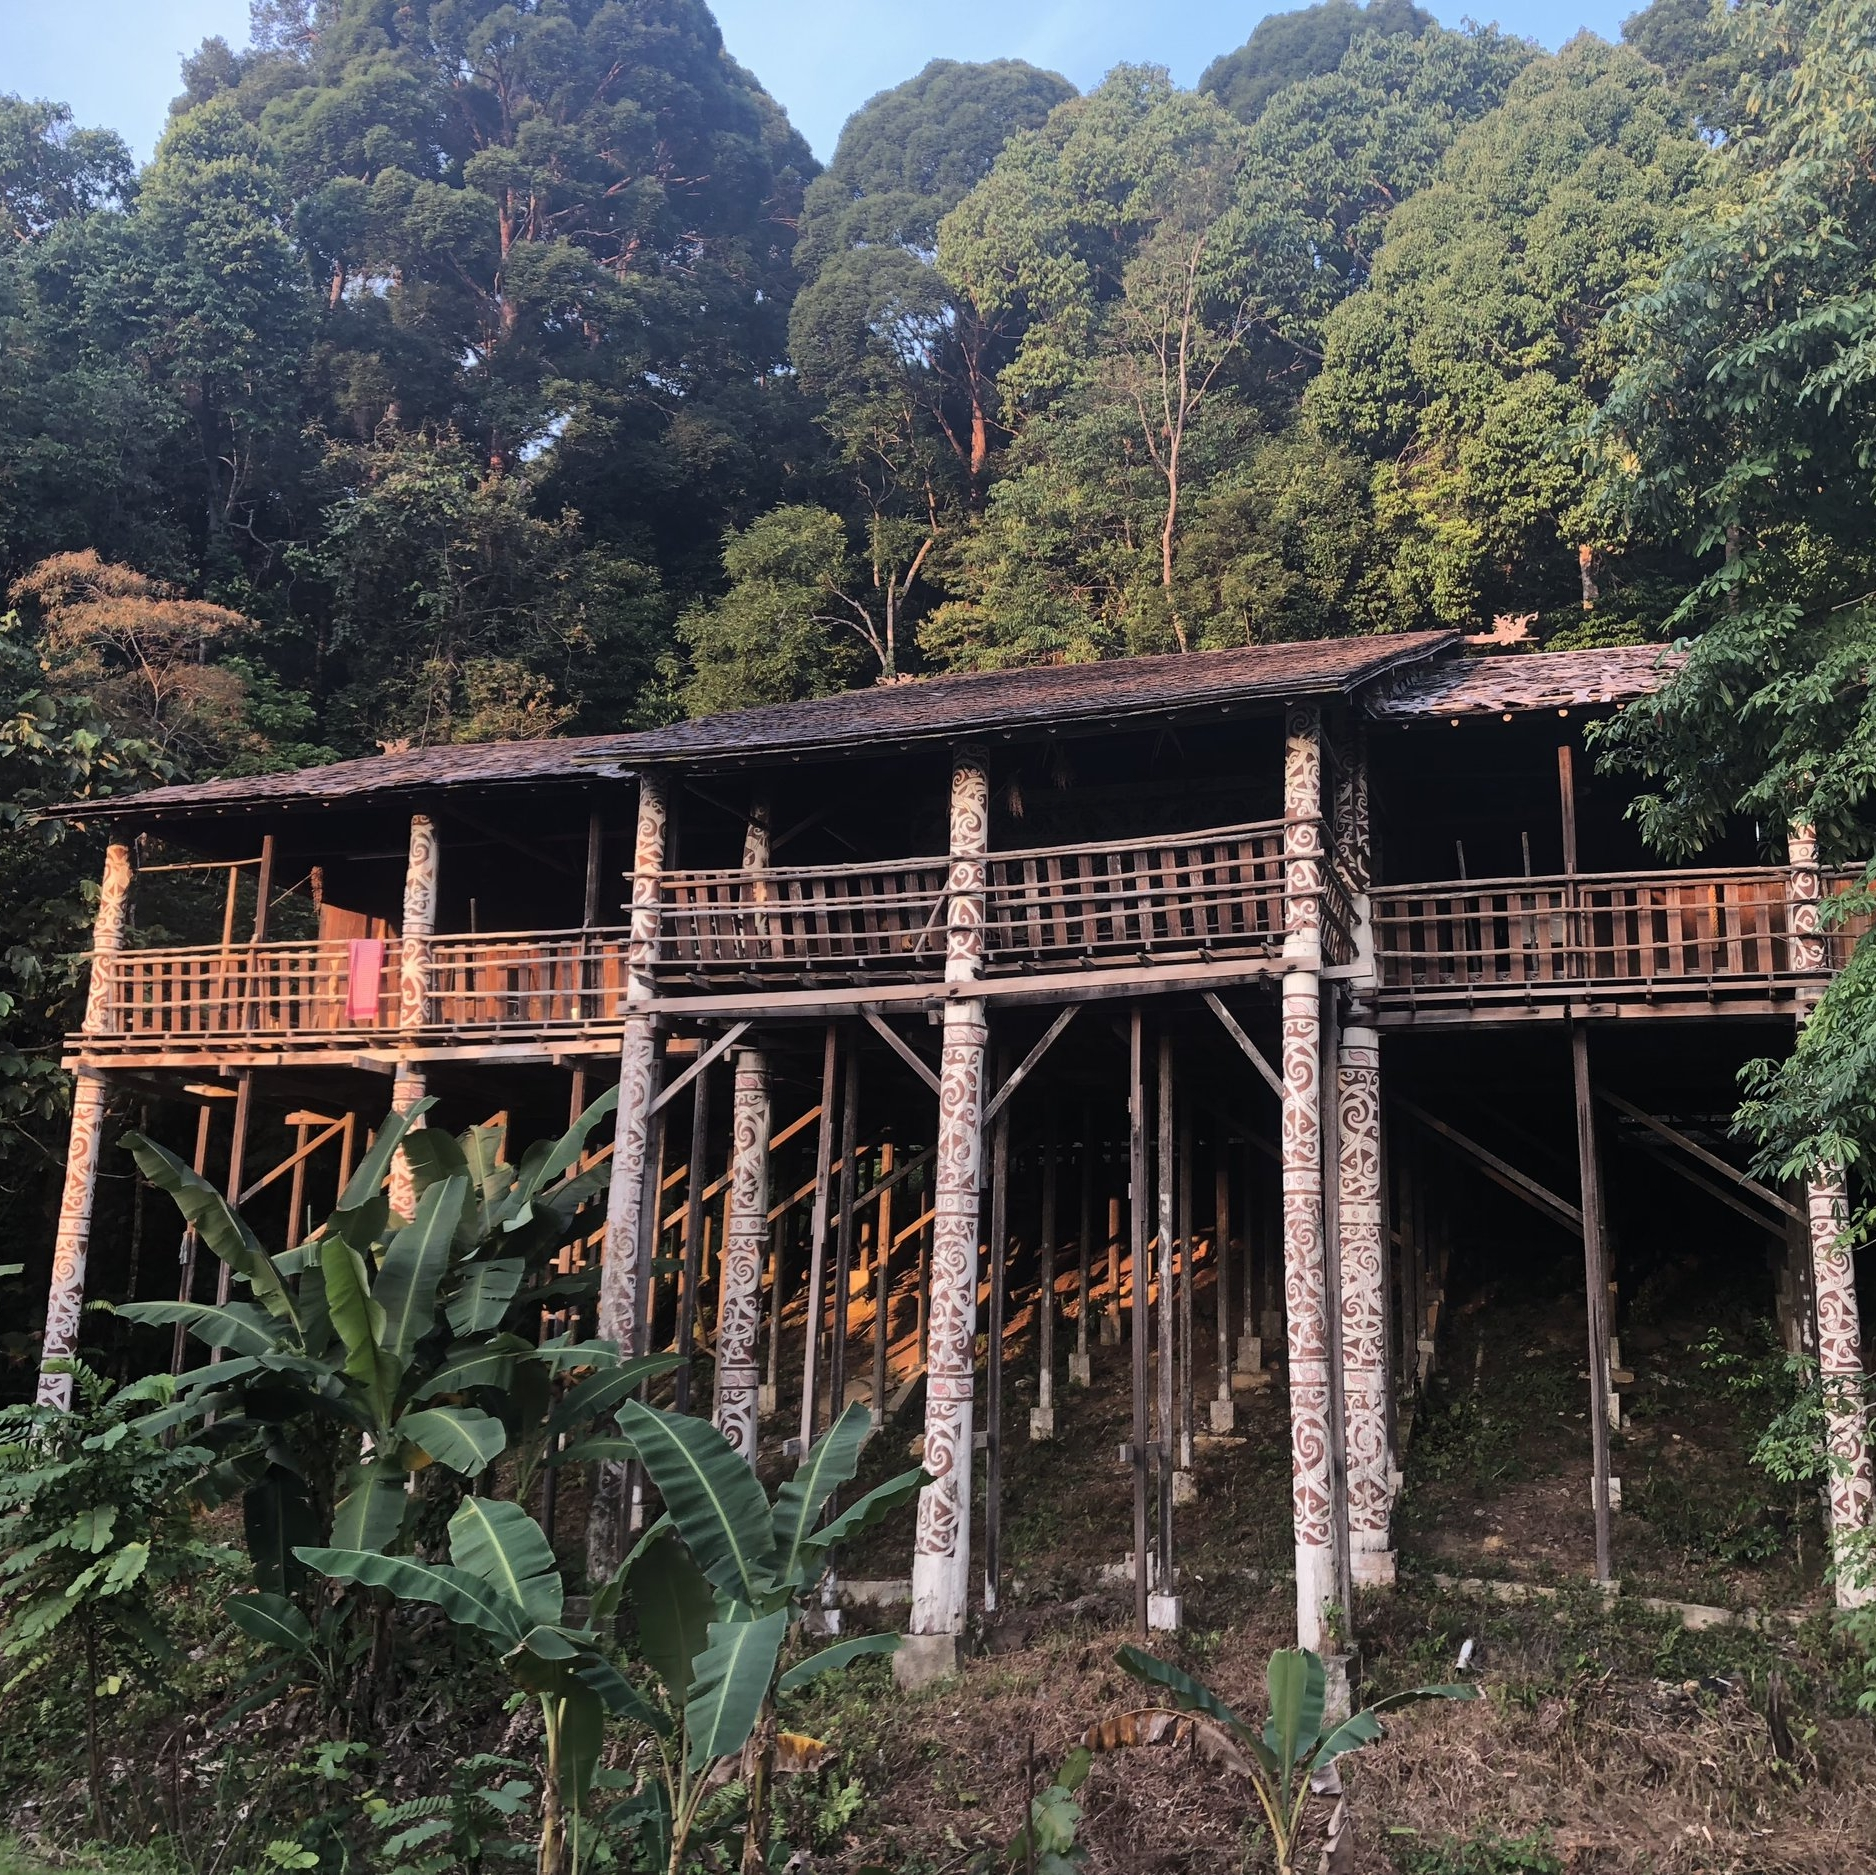 Enjoying the serenity in the 'Orang Ulu' Longhouse.